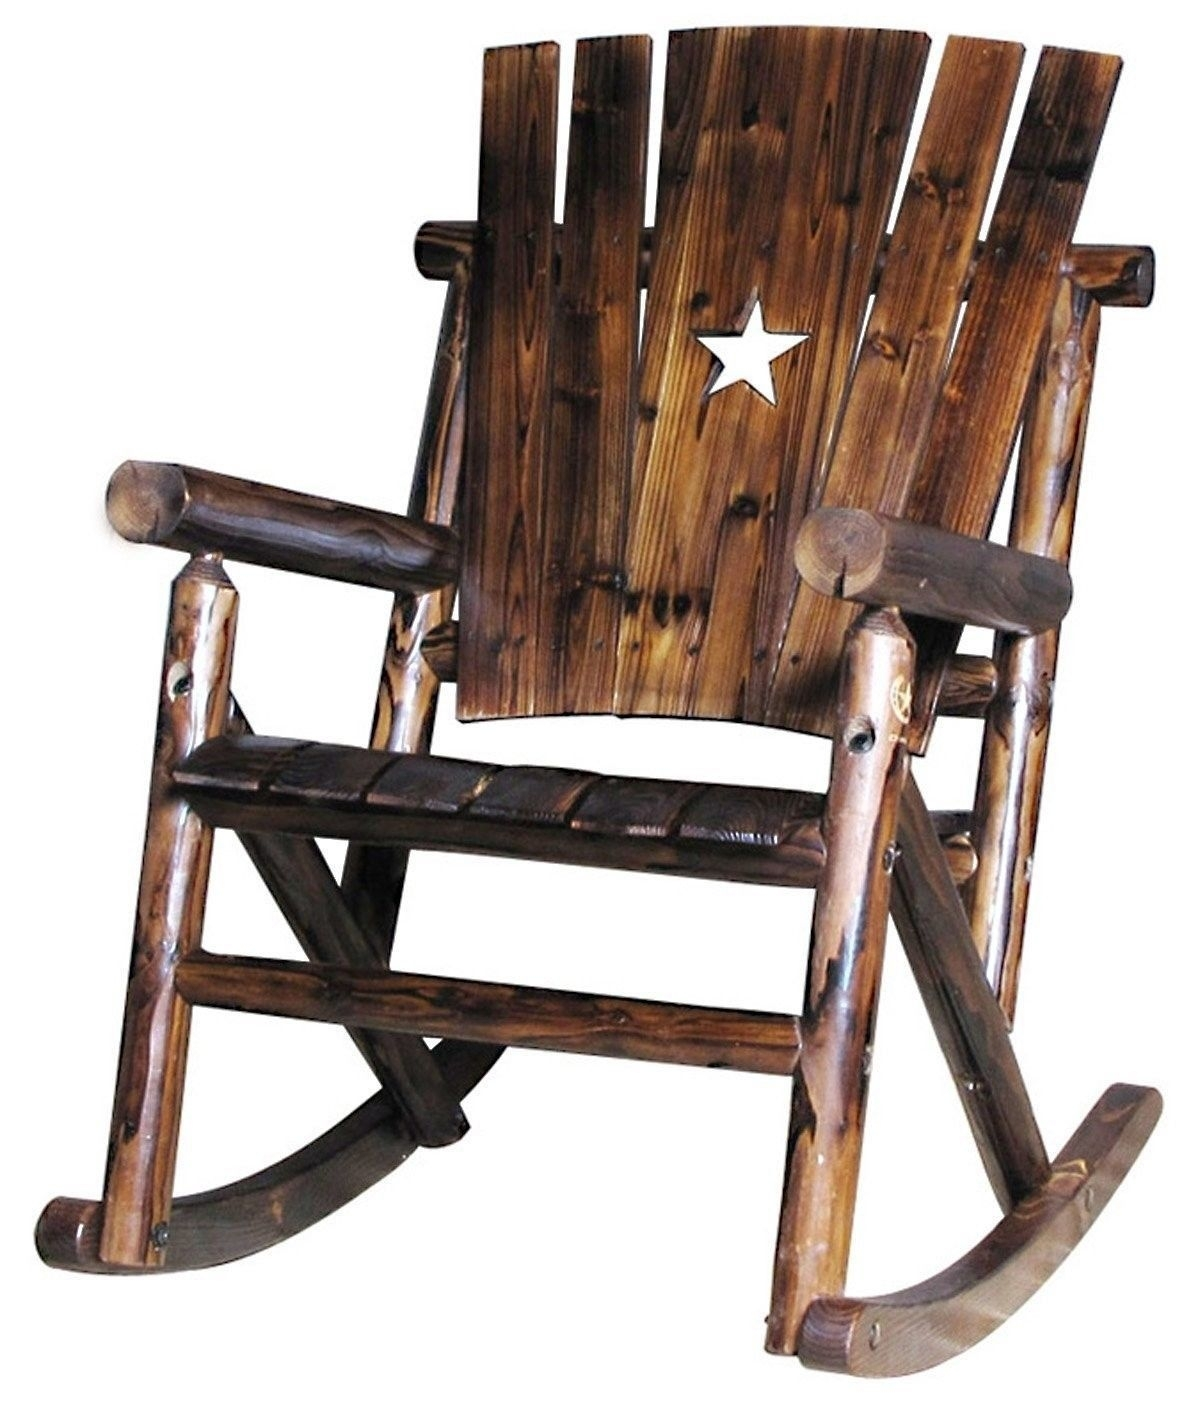 Solid Pine Fir Wood Single Rocker Rocking Chair W Star Outdoor Inside Char Log Patio Rocking Chairs With Star (#14 of 15)